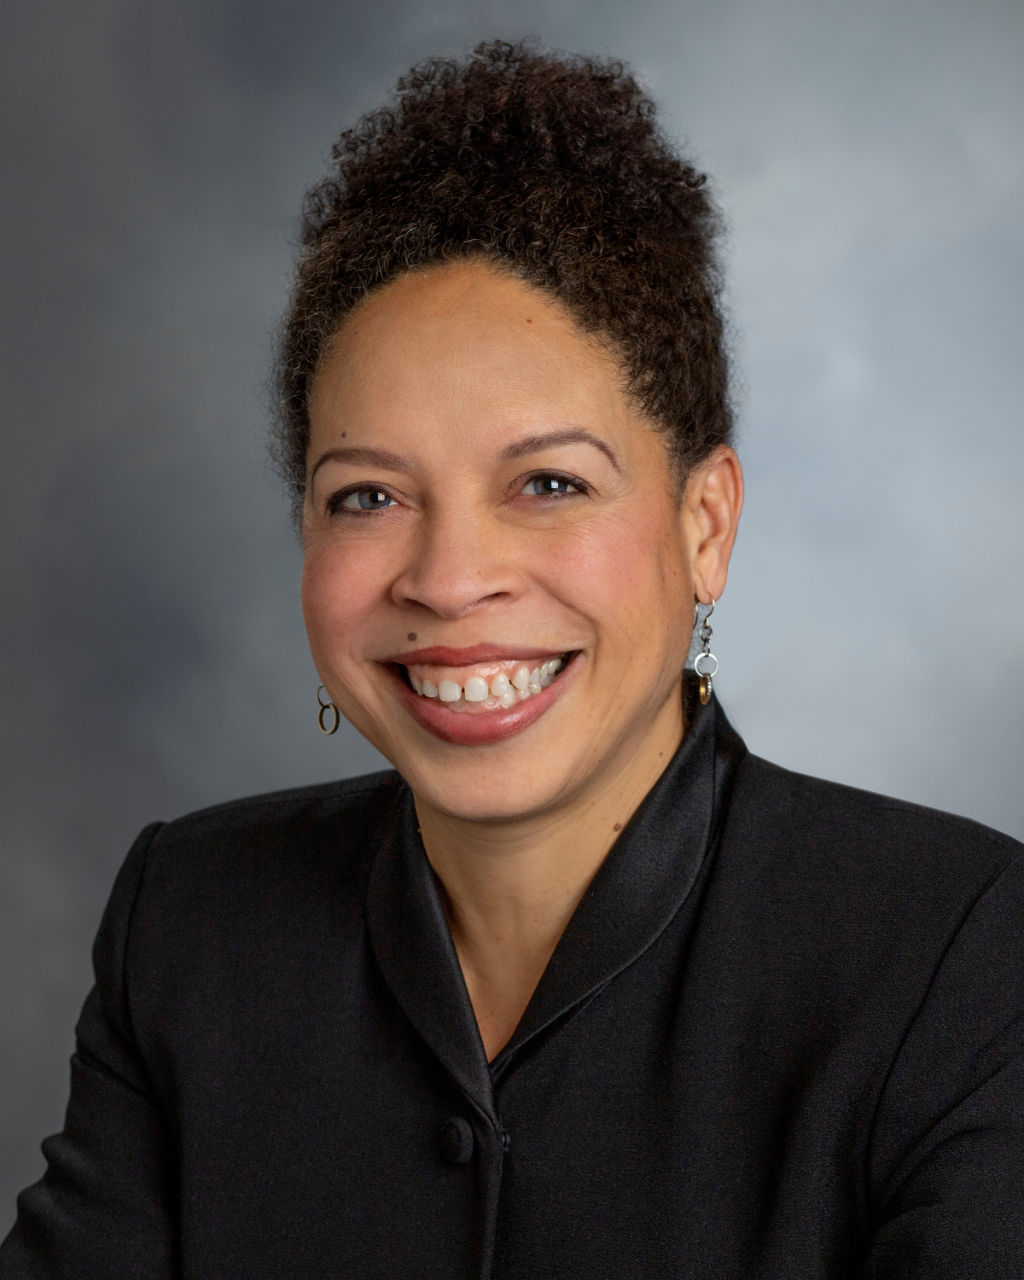 Image of Dawn Frazier-Bohnert, Senior VP and Global Diversity & Inclusion Officer, Liberty Mutual